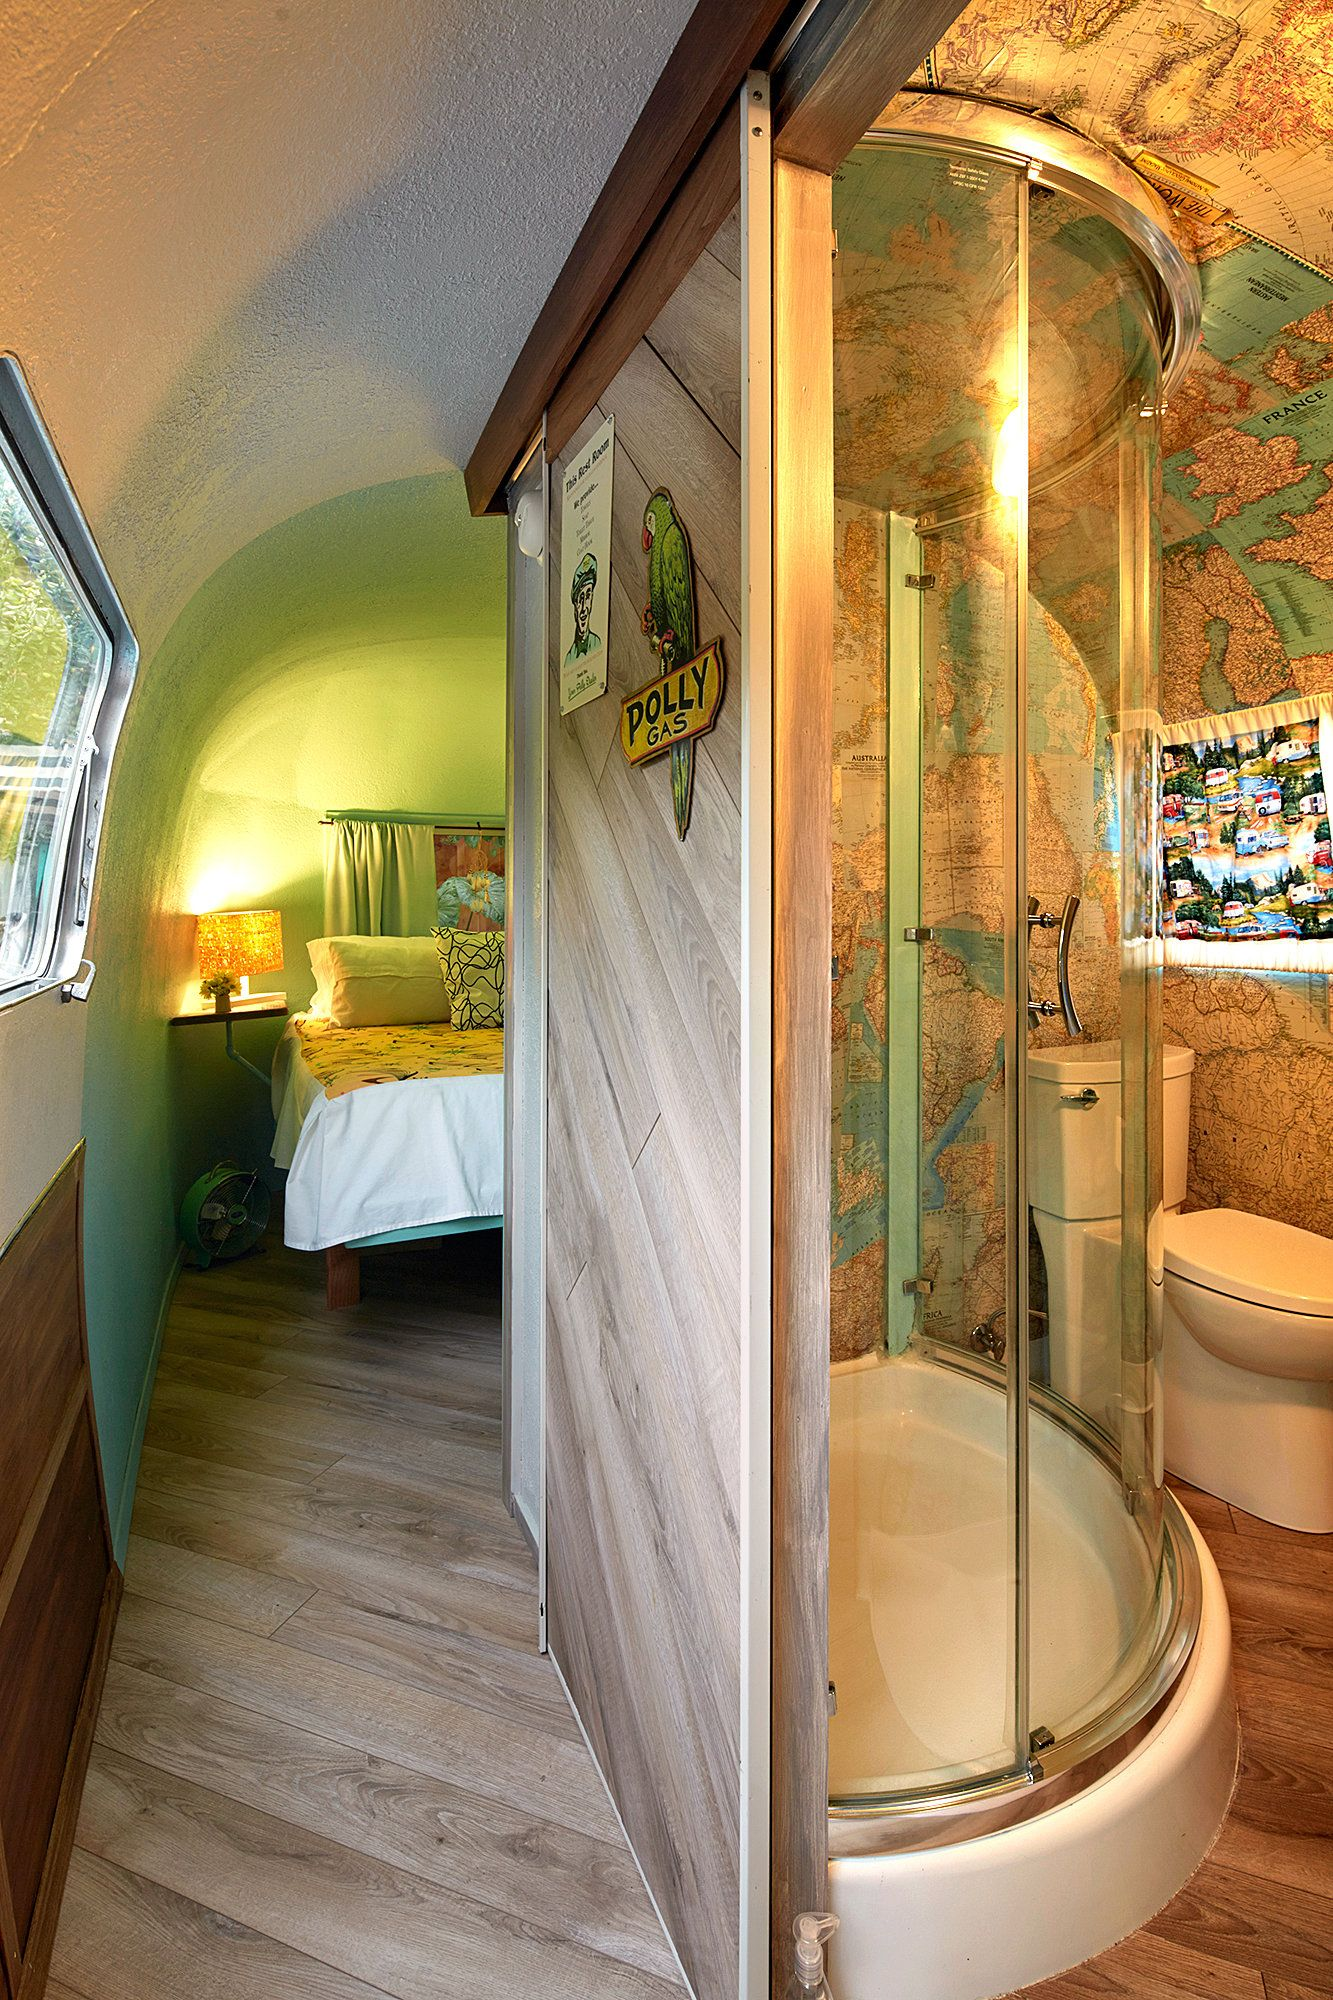 A passion for vintage trailers vintage trailers for Rv bathroom wallpaper